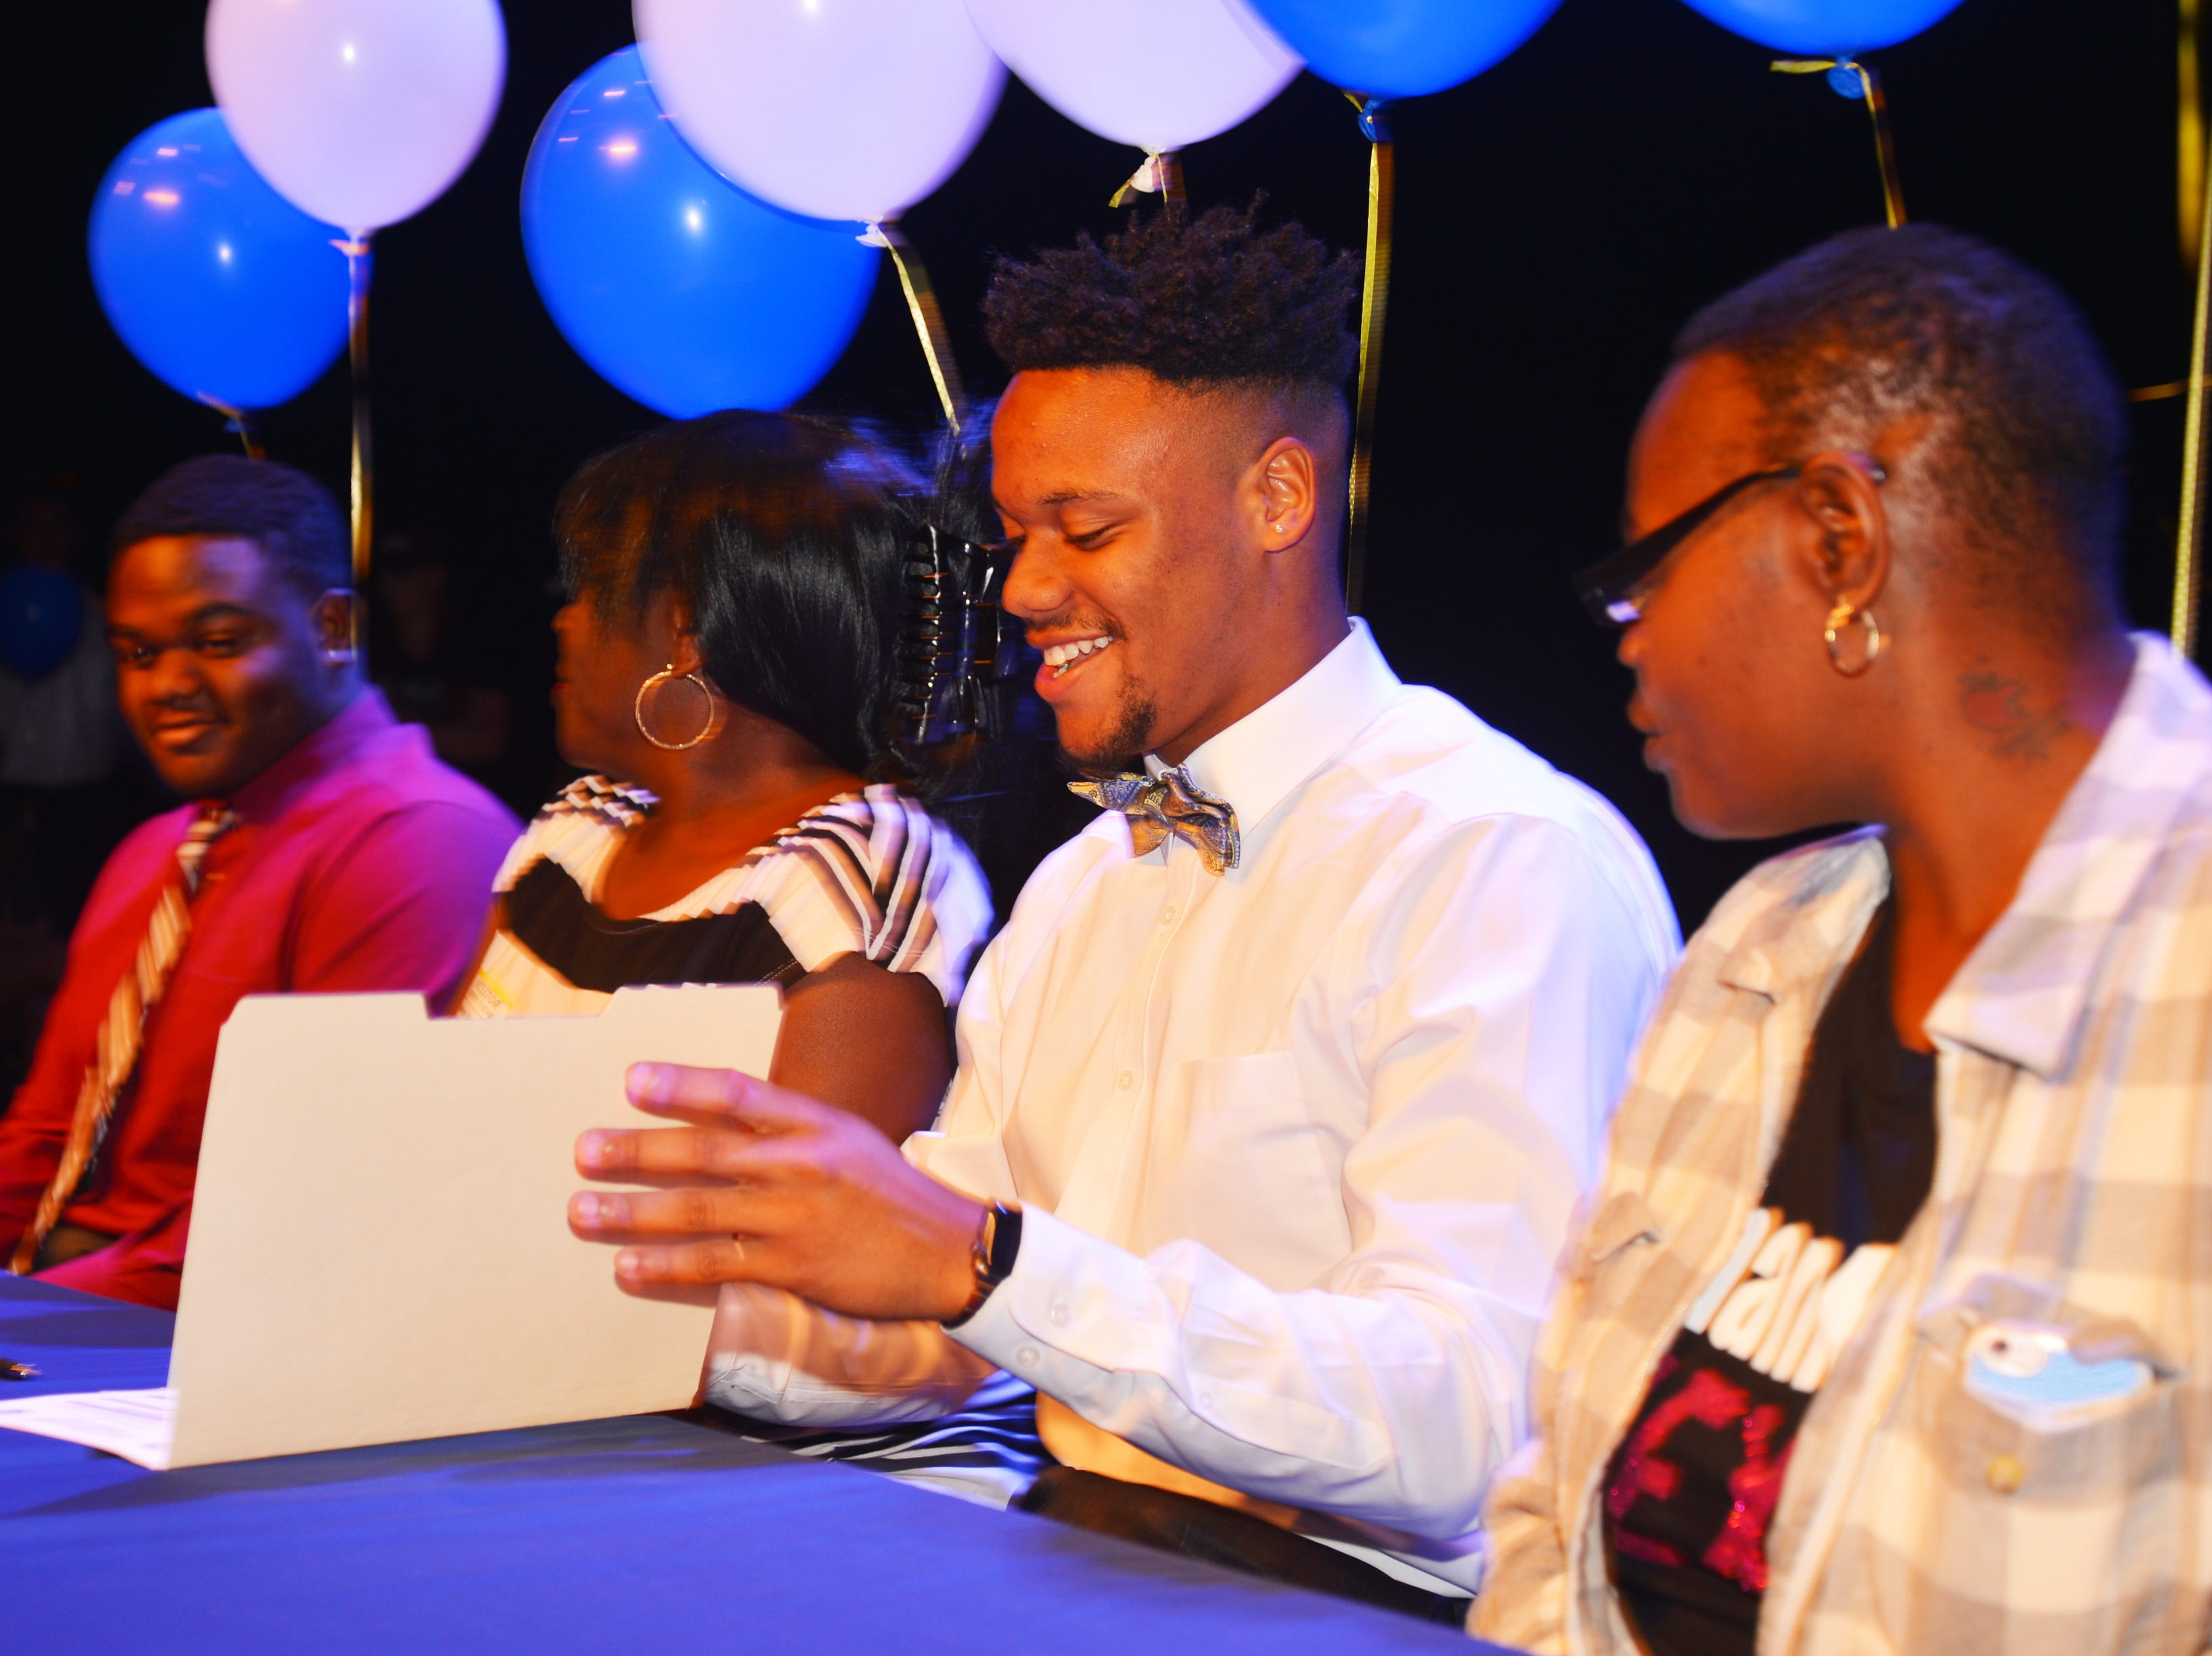 Eau Gallie High School had 11 athletes sign letters of intent on Wednesday. Zachary Passion geting ready to sign.